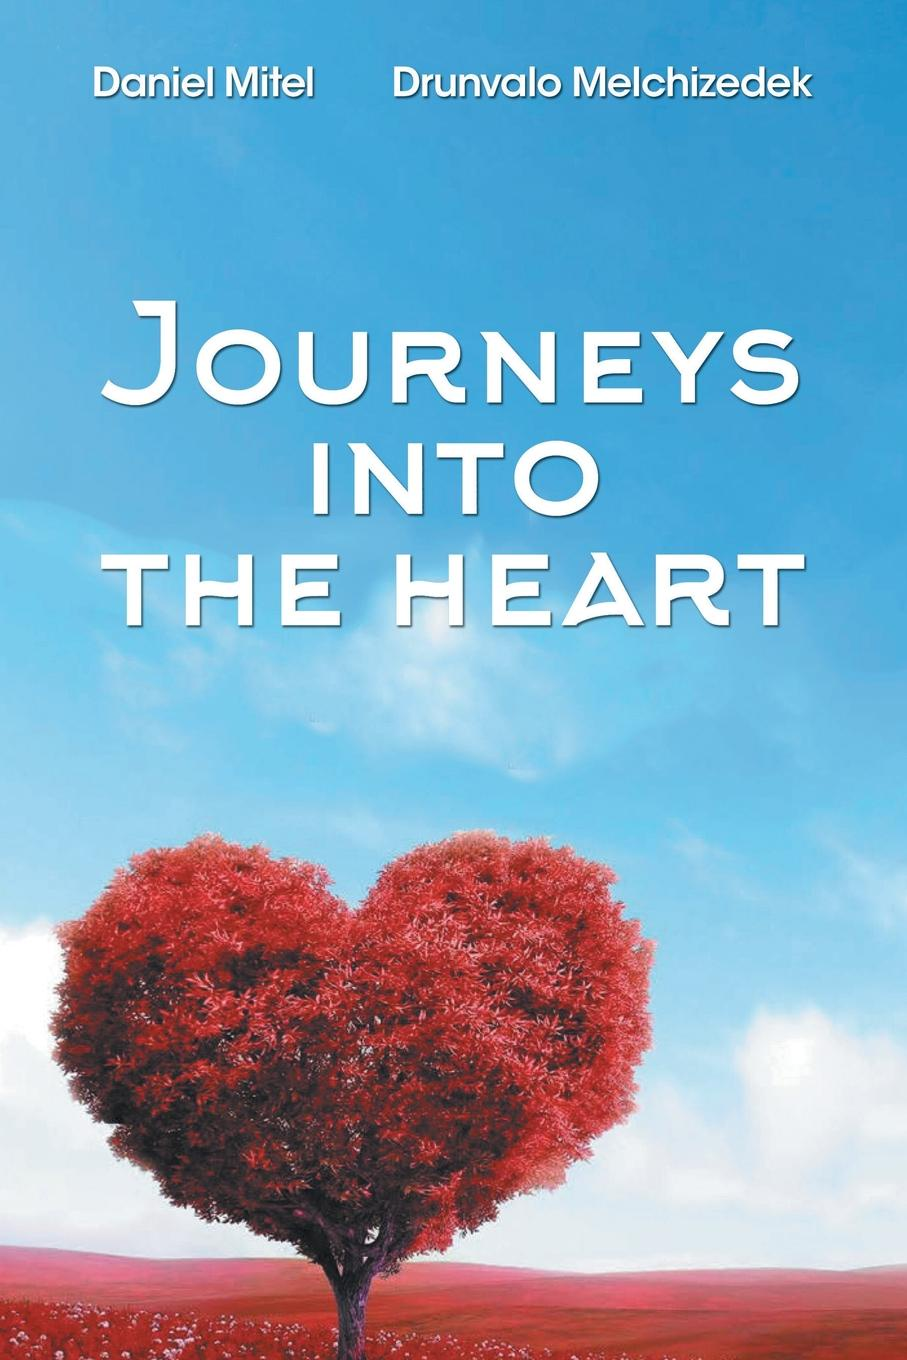 Drunvalo Melchizedek, Daniel Mitel Journeys into the Heart john croiset patrick o connell devotion to the sacred heart of jesus how to practice the sacred heart devotion